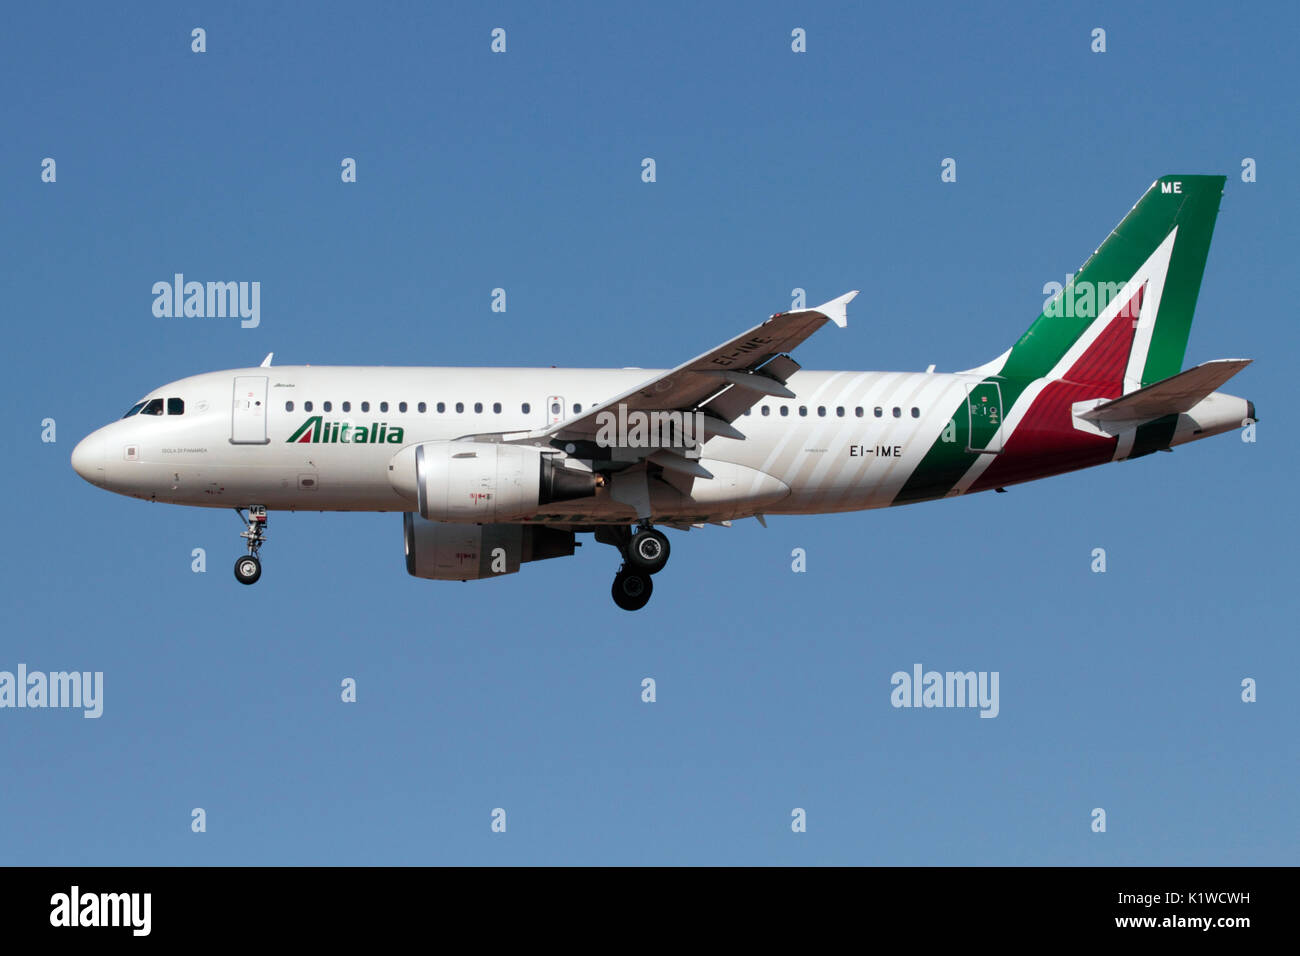 Side view of an Alitalia Airbus A319 airliner in the airline's new livery - Stock Image